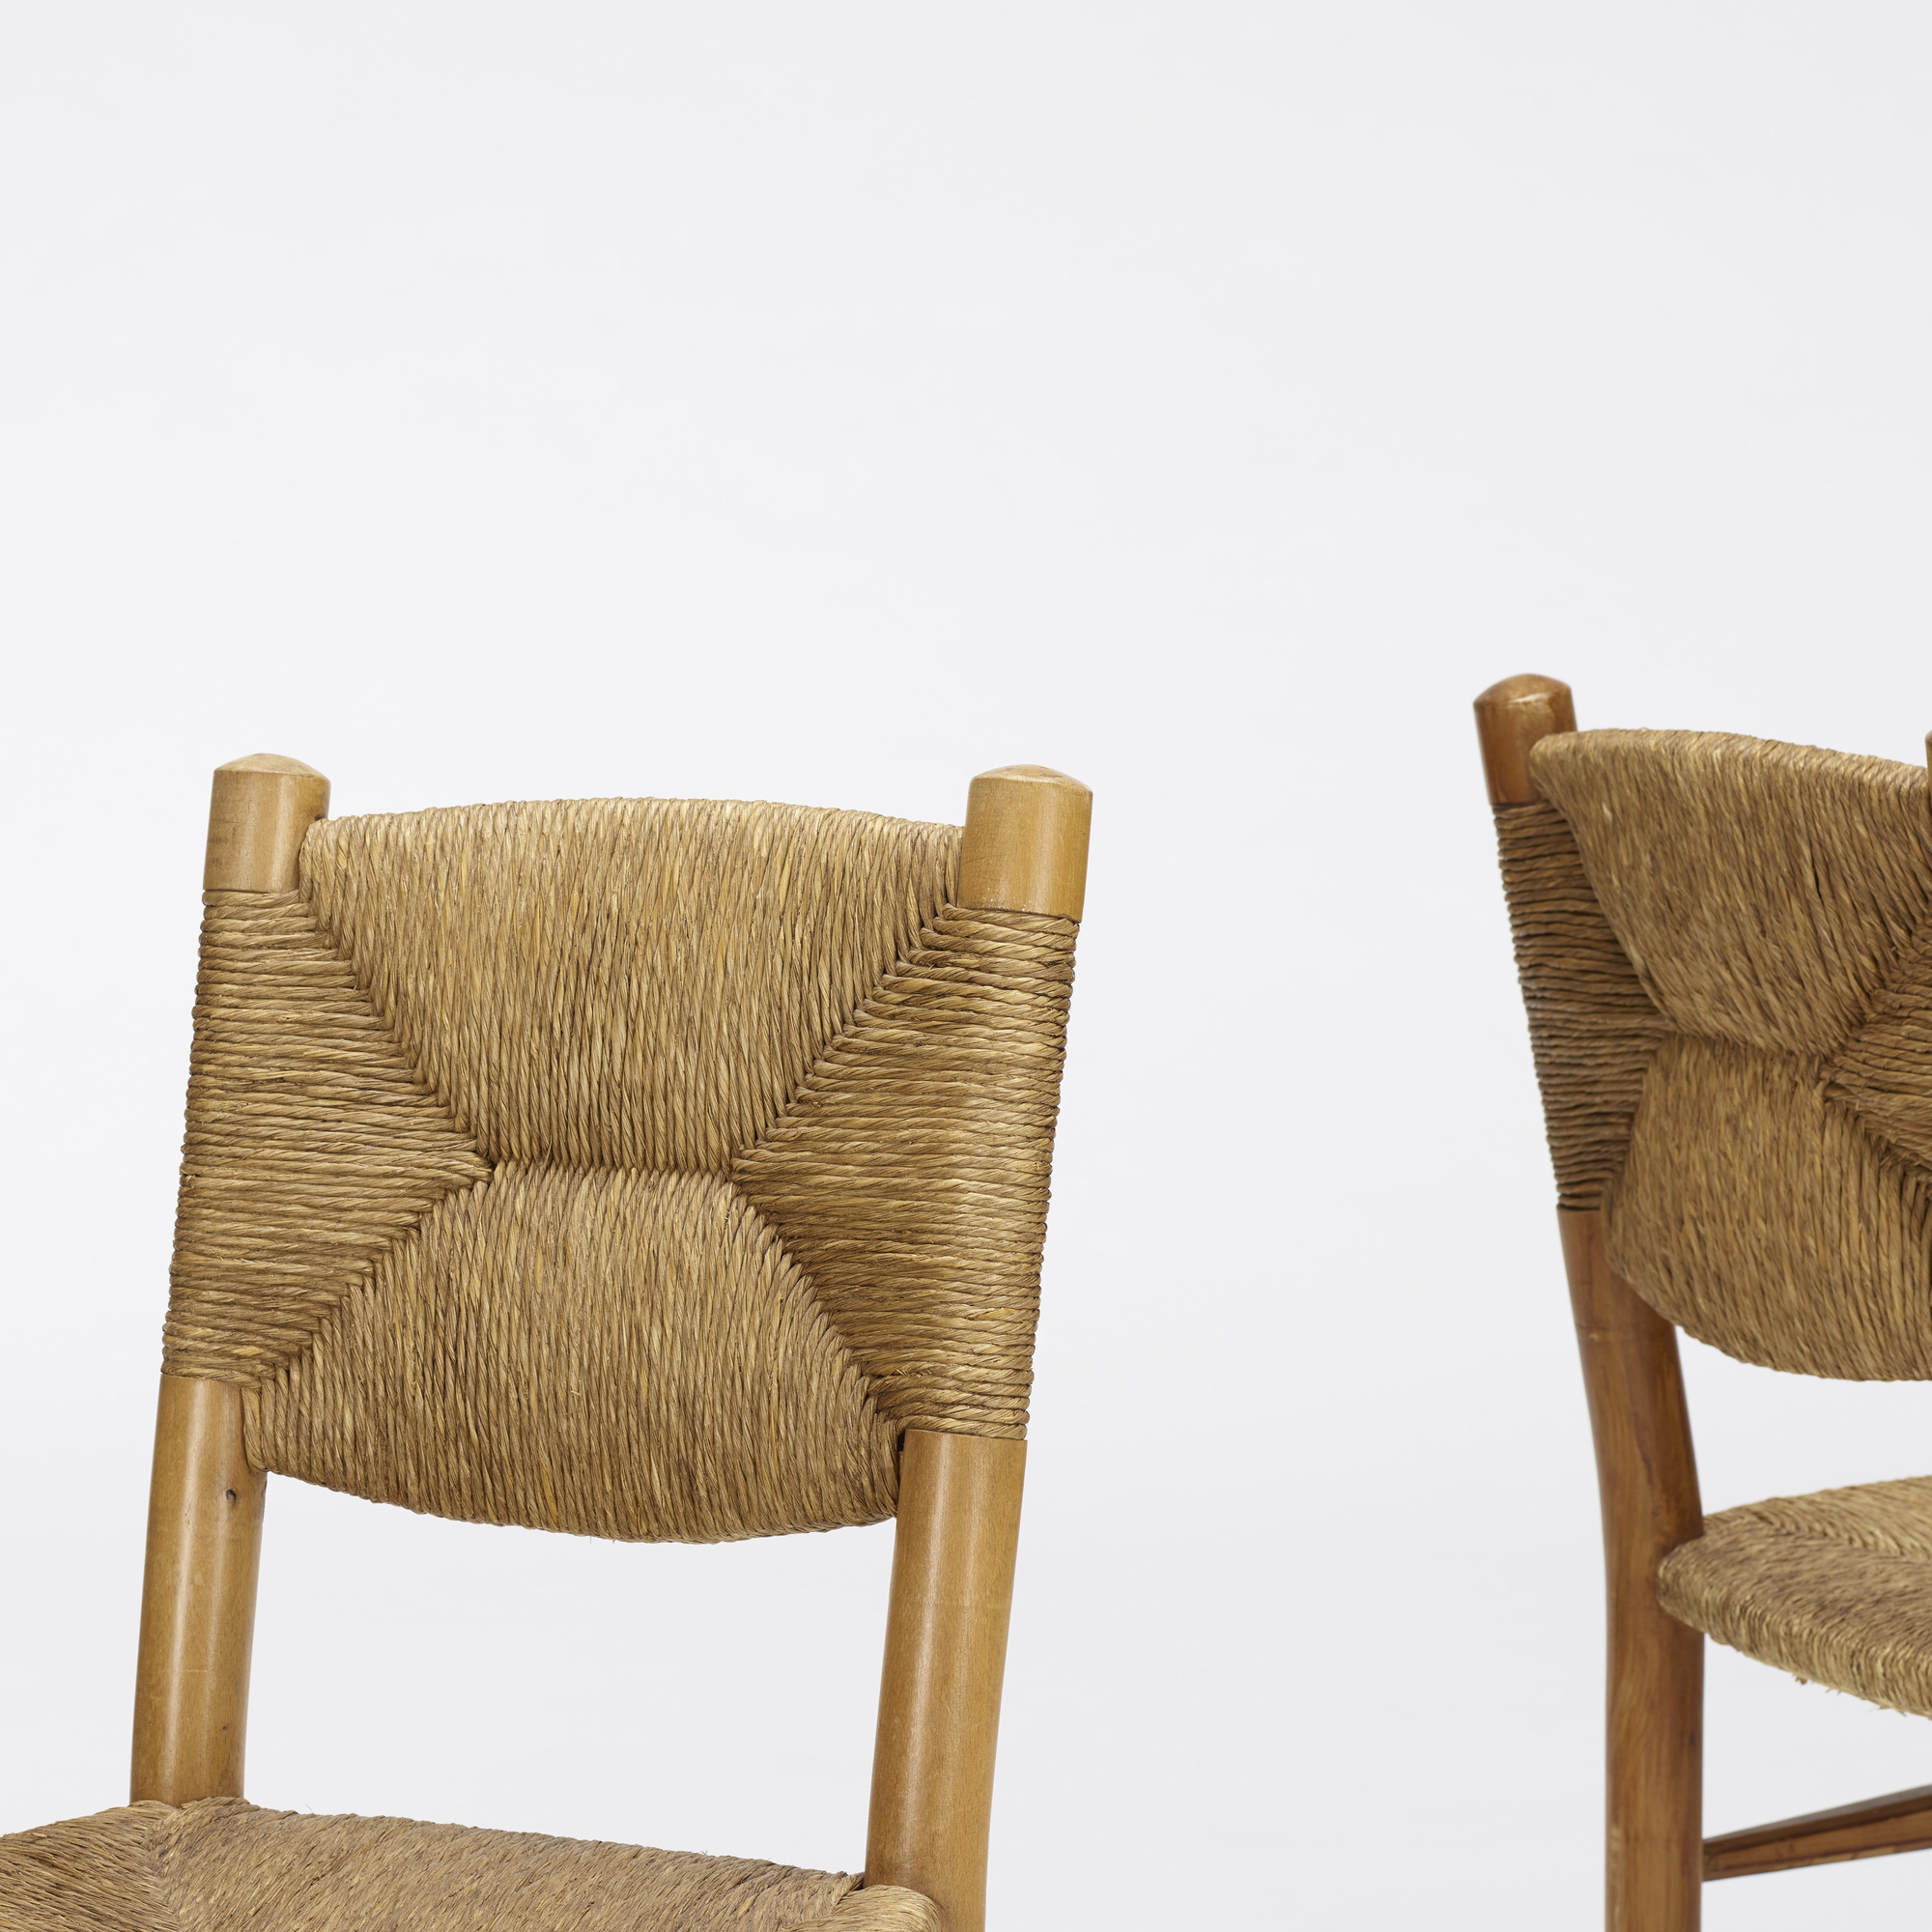 123: Charlotte Perriand / dining chairs, pair (3 of 4)